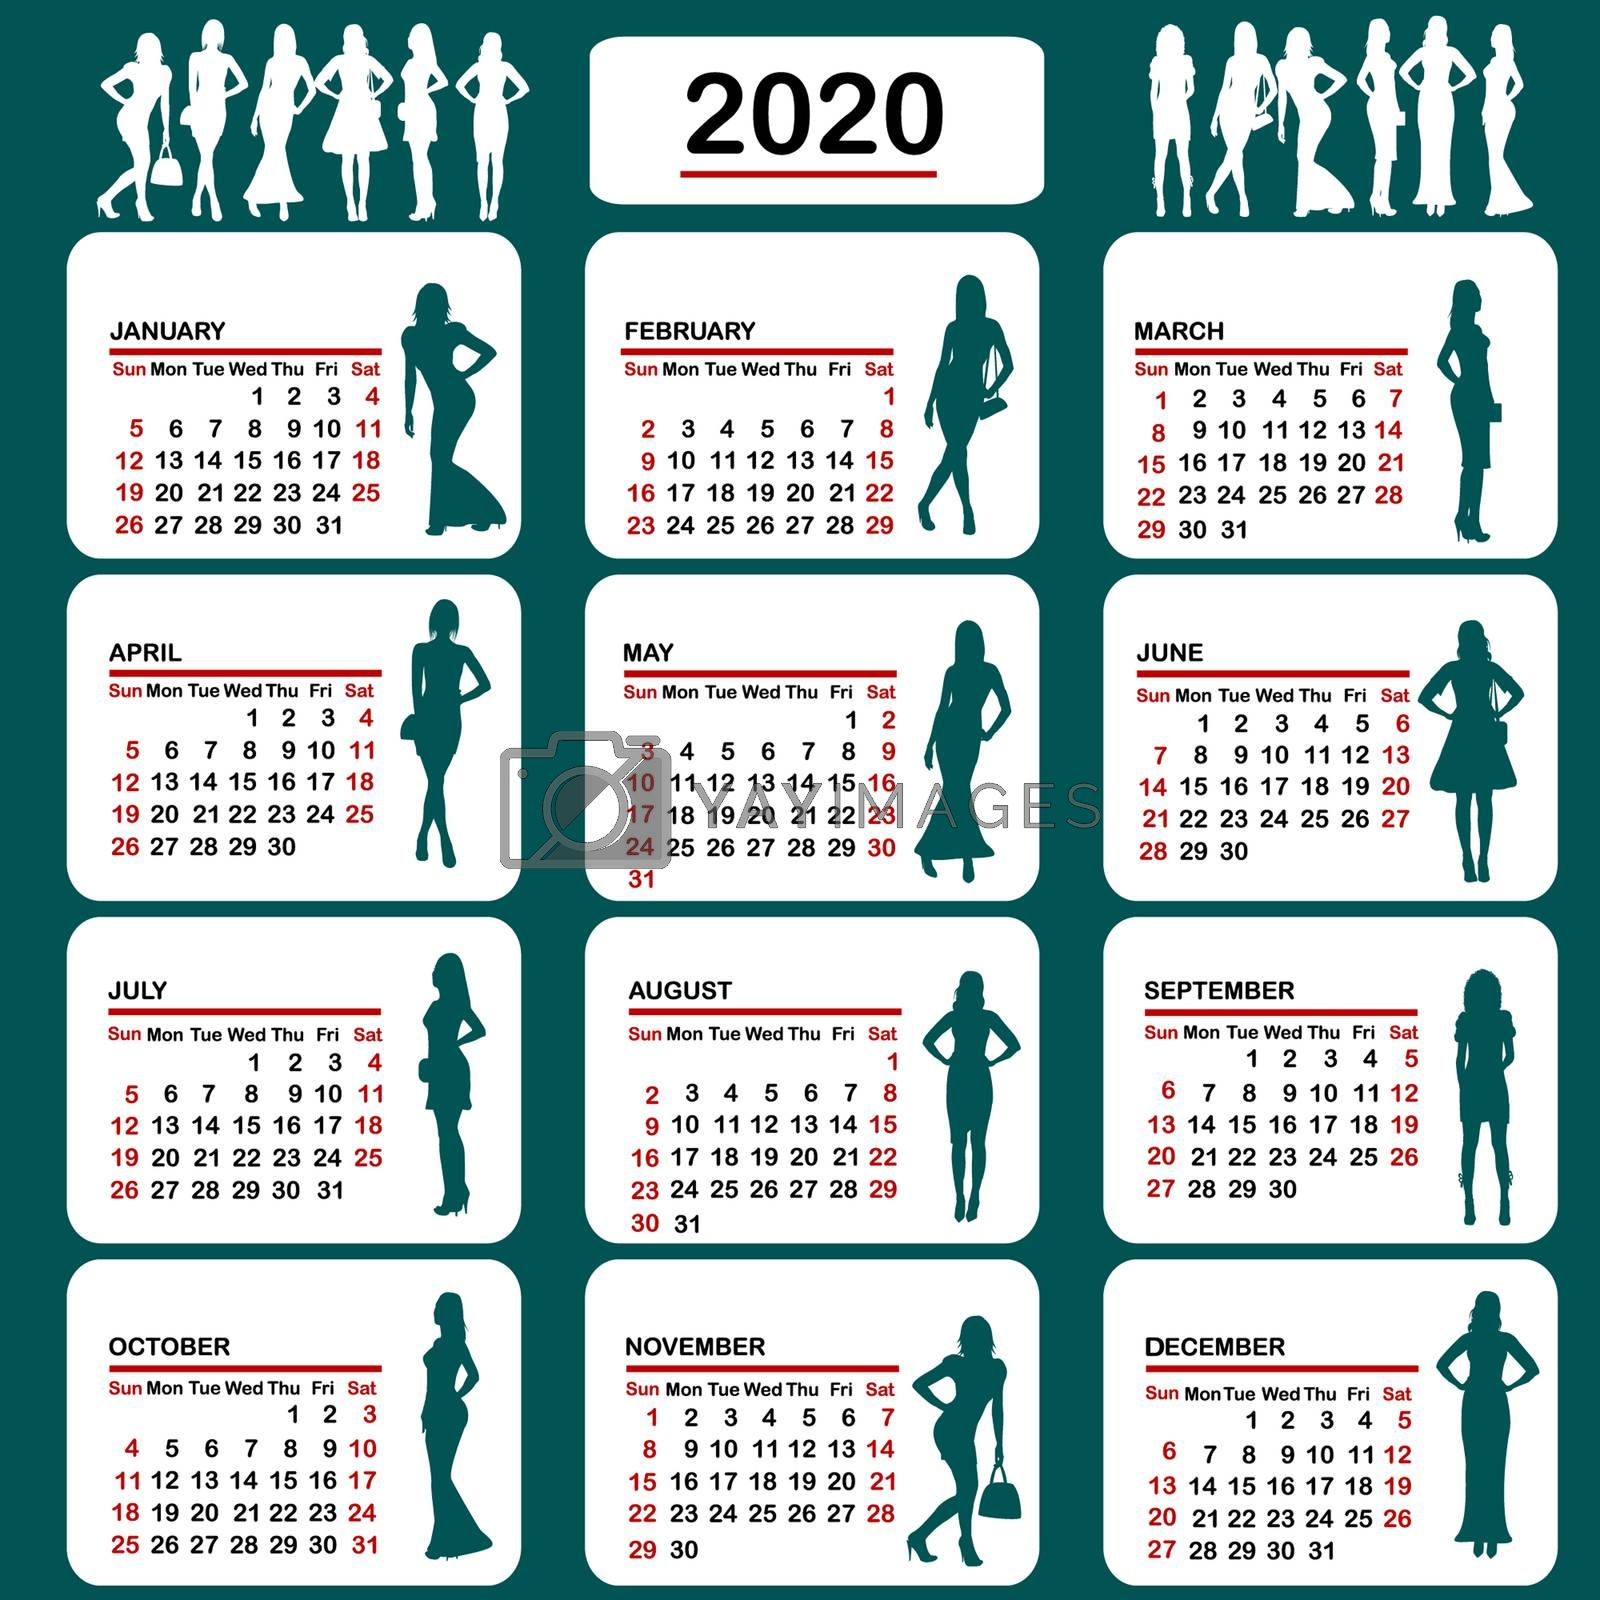 2020 calendar with fashion silhouettes of women